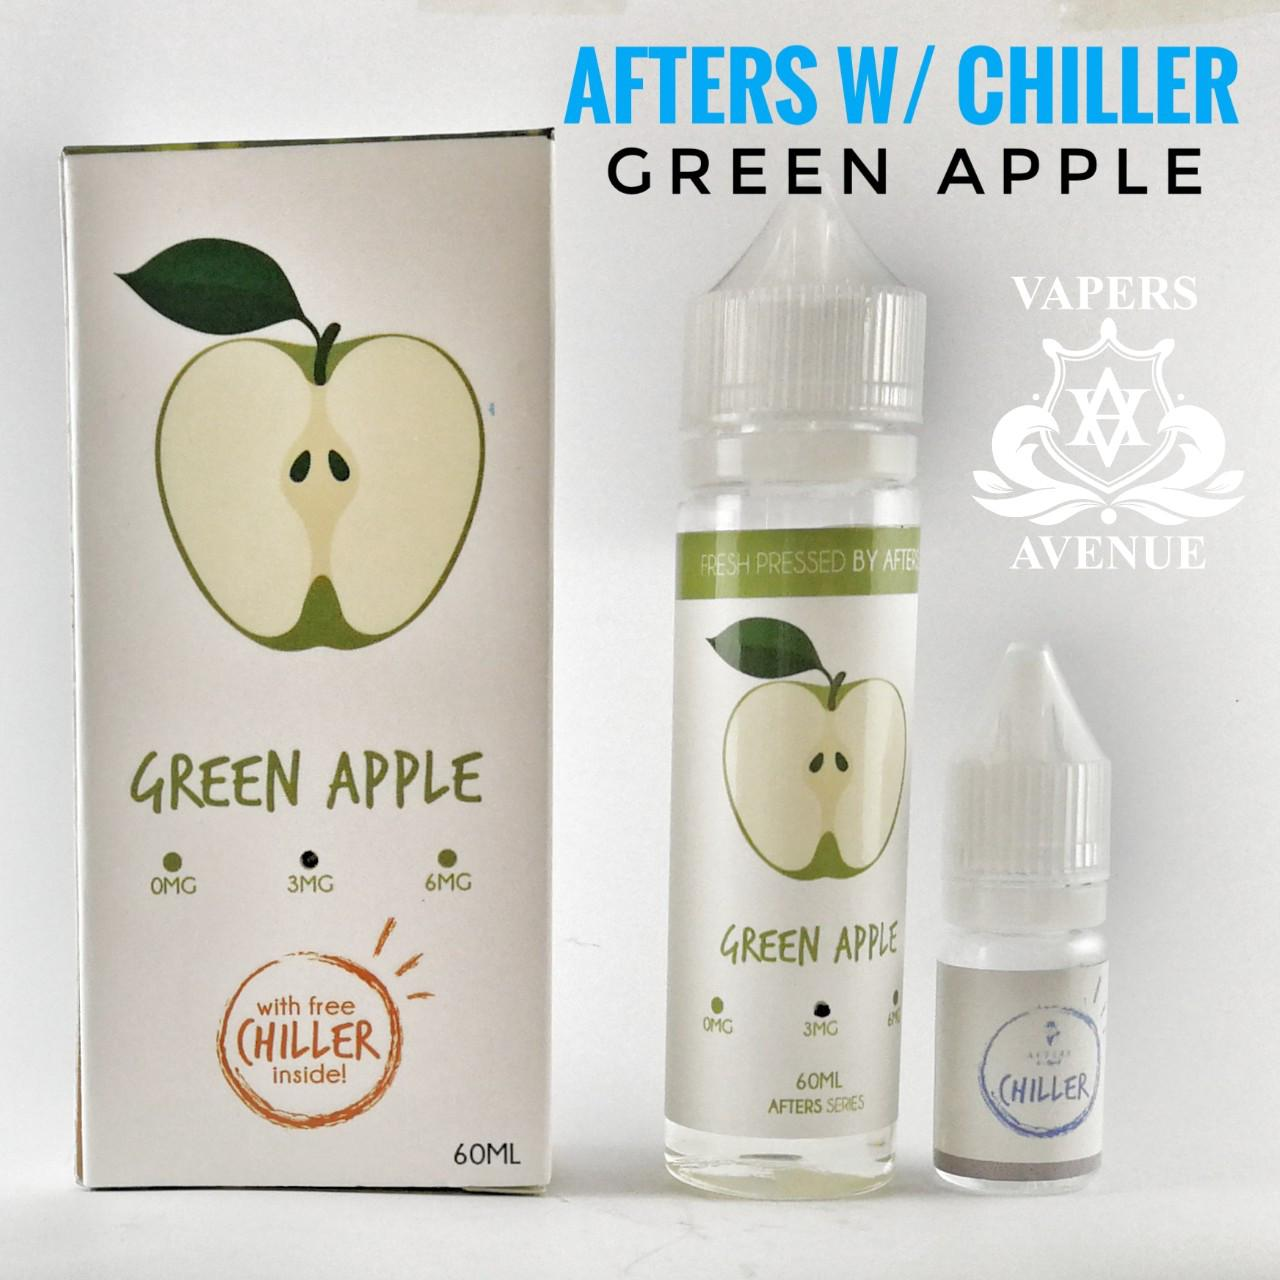 Afters with Chiller - Green Apple 3mg vape juice menthol e-juice fruity e-liquid